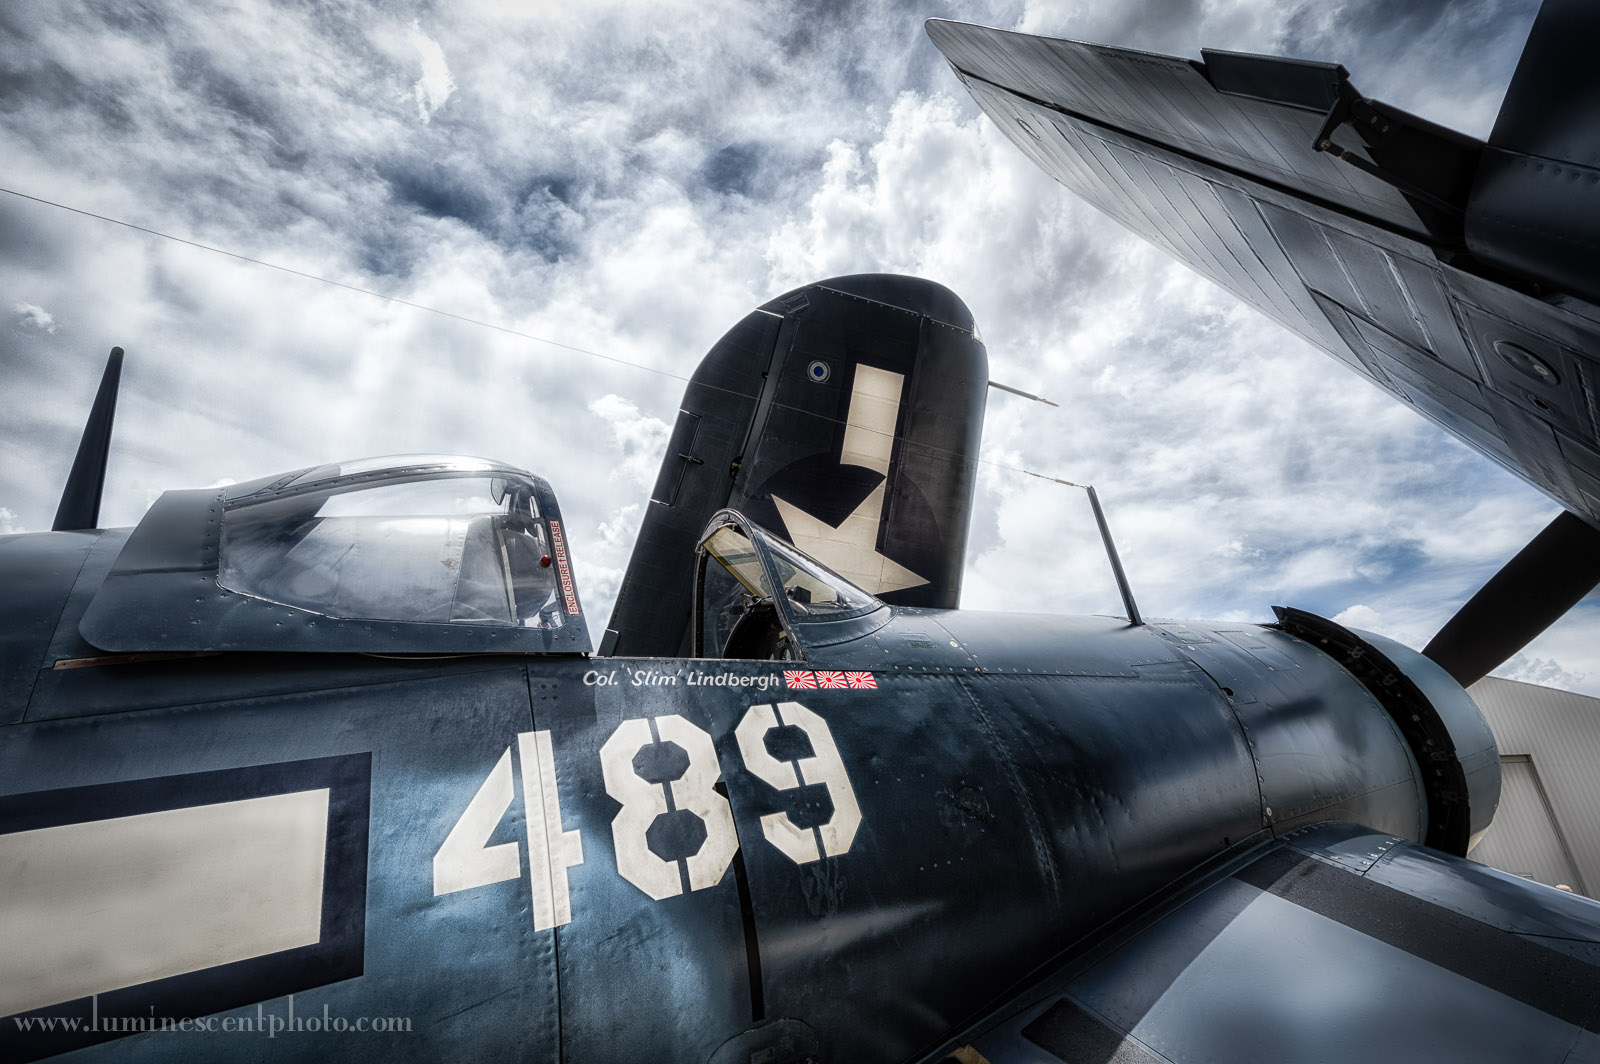 Commemorative Air Force F4U Corsair visiting Colorado Springs, CO.